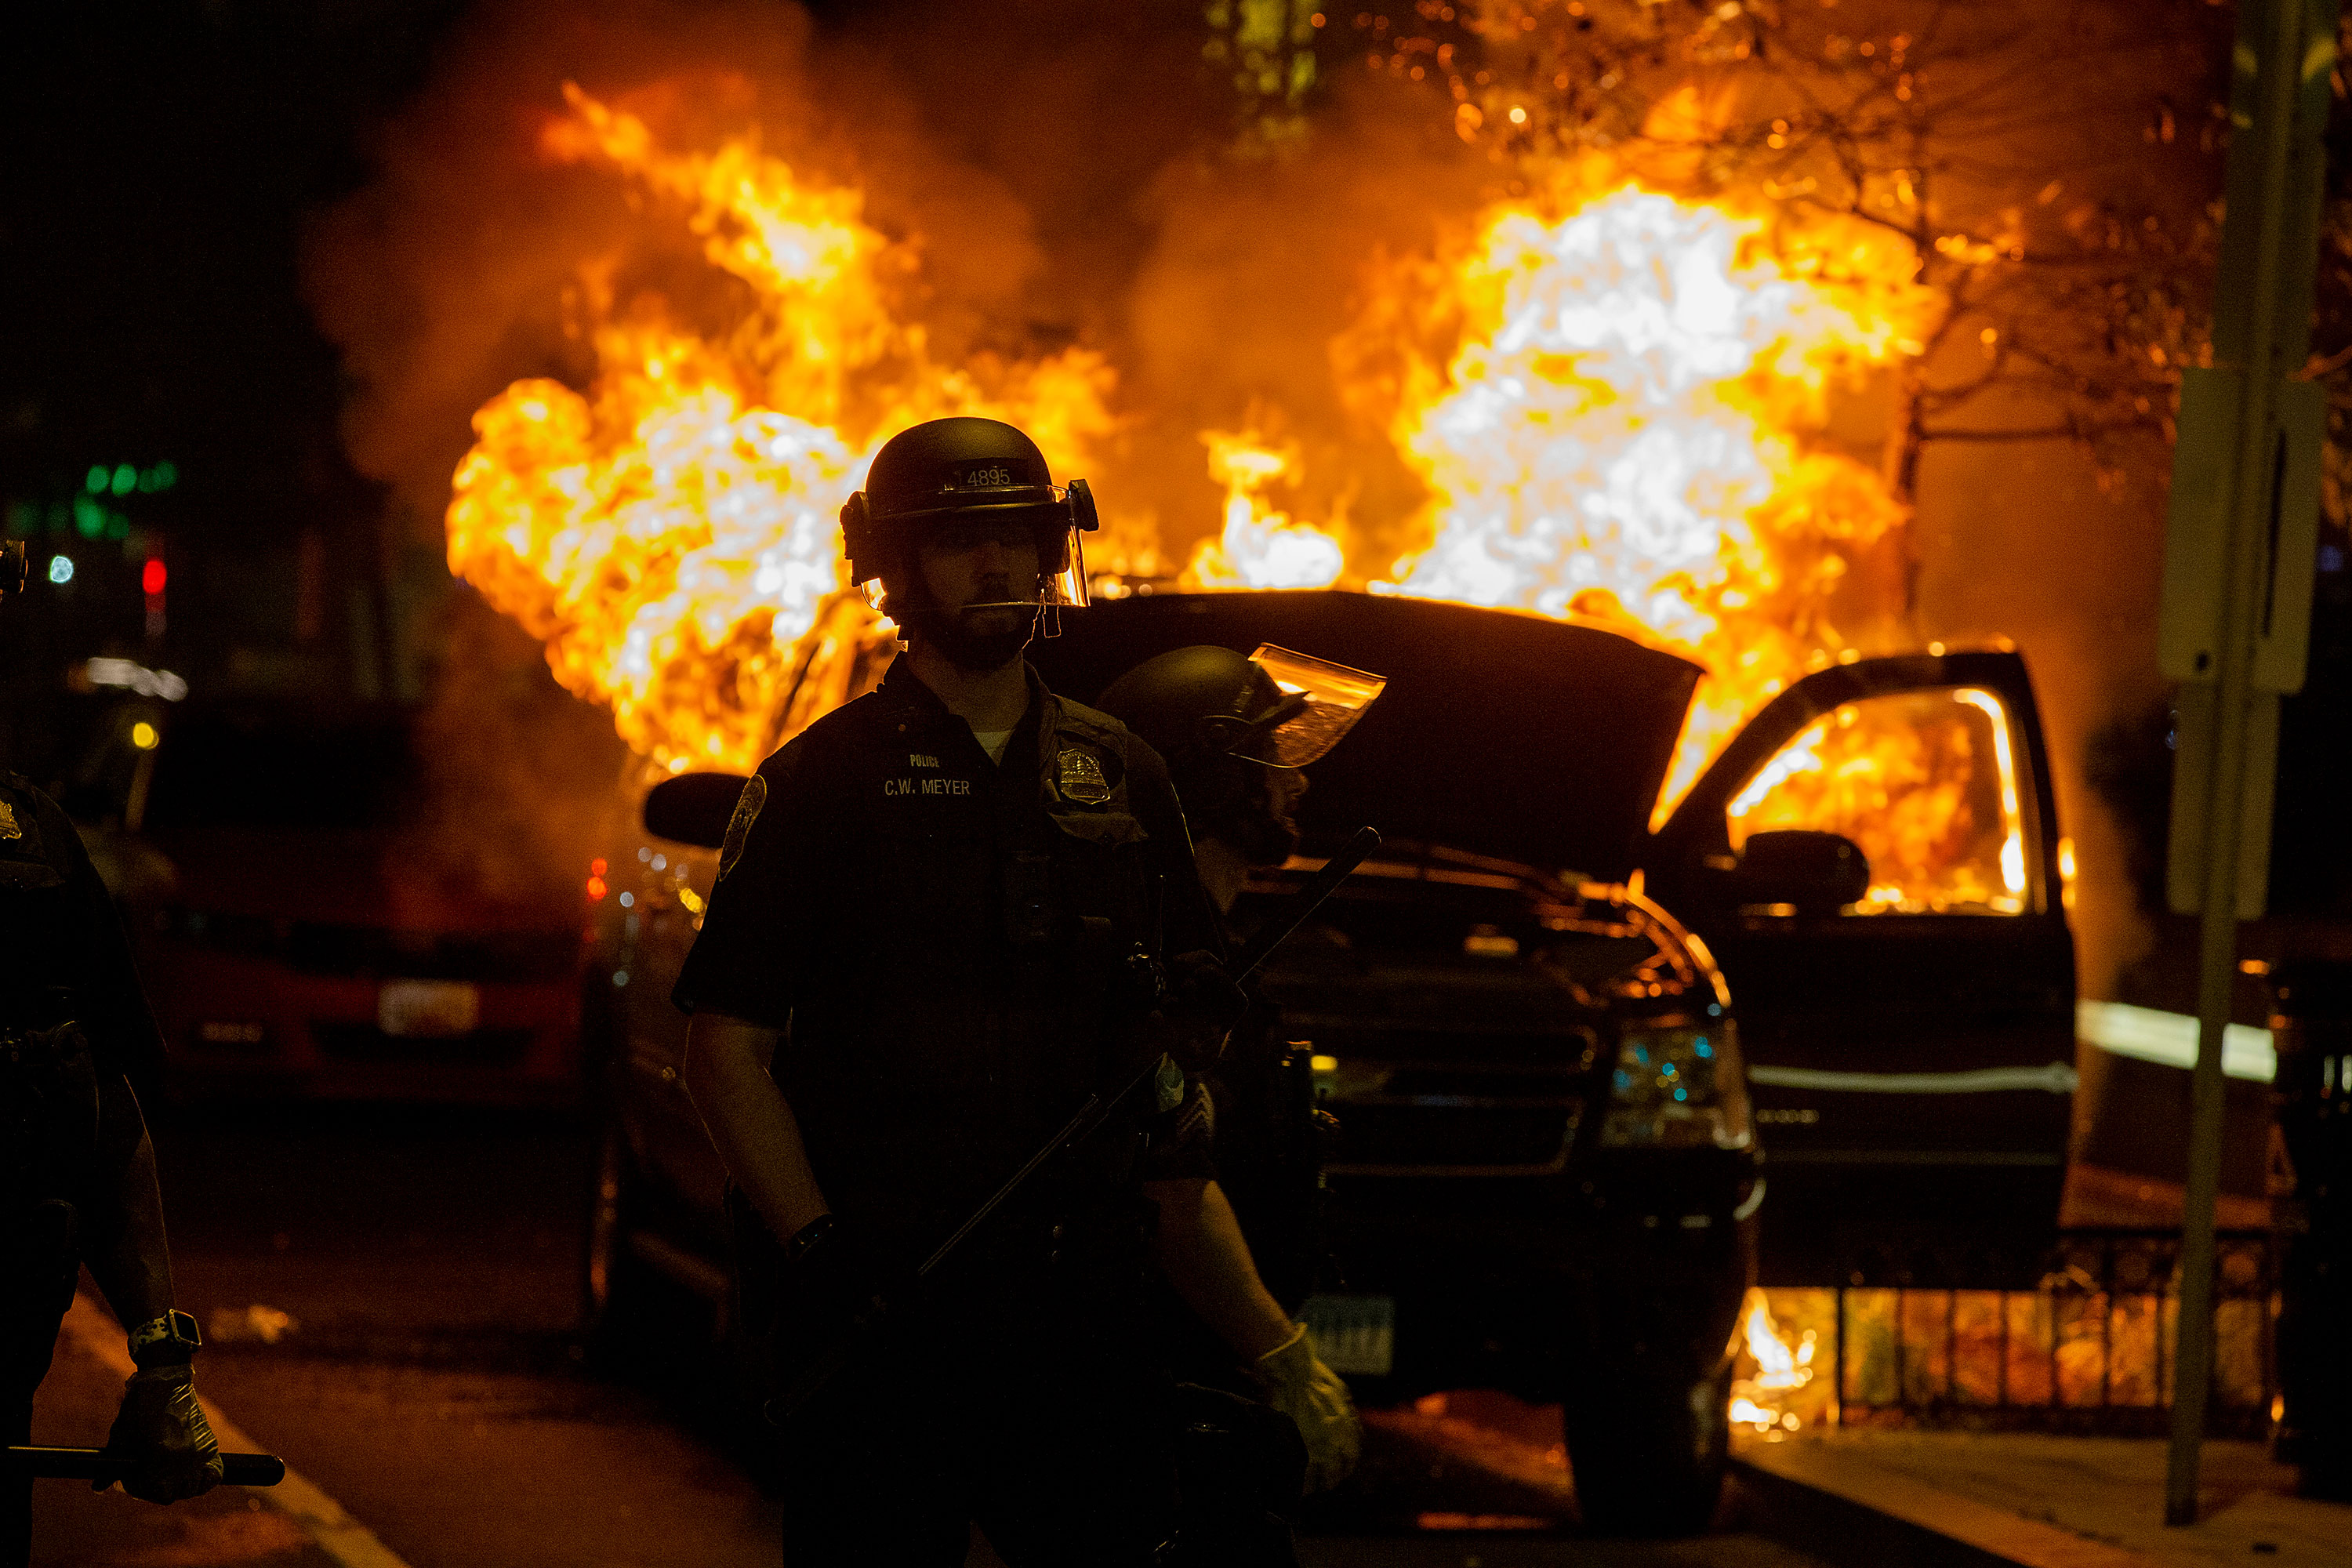 A vehicle burns during a protest near Lafayette Square Park in Washington on May 30.